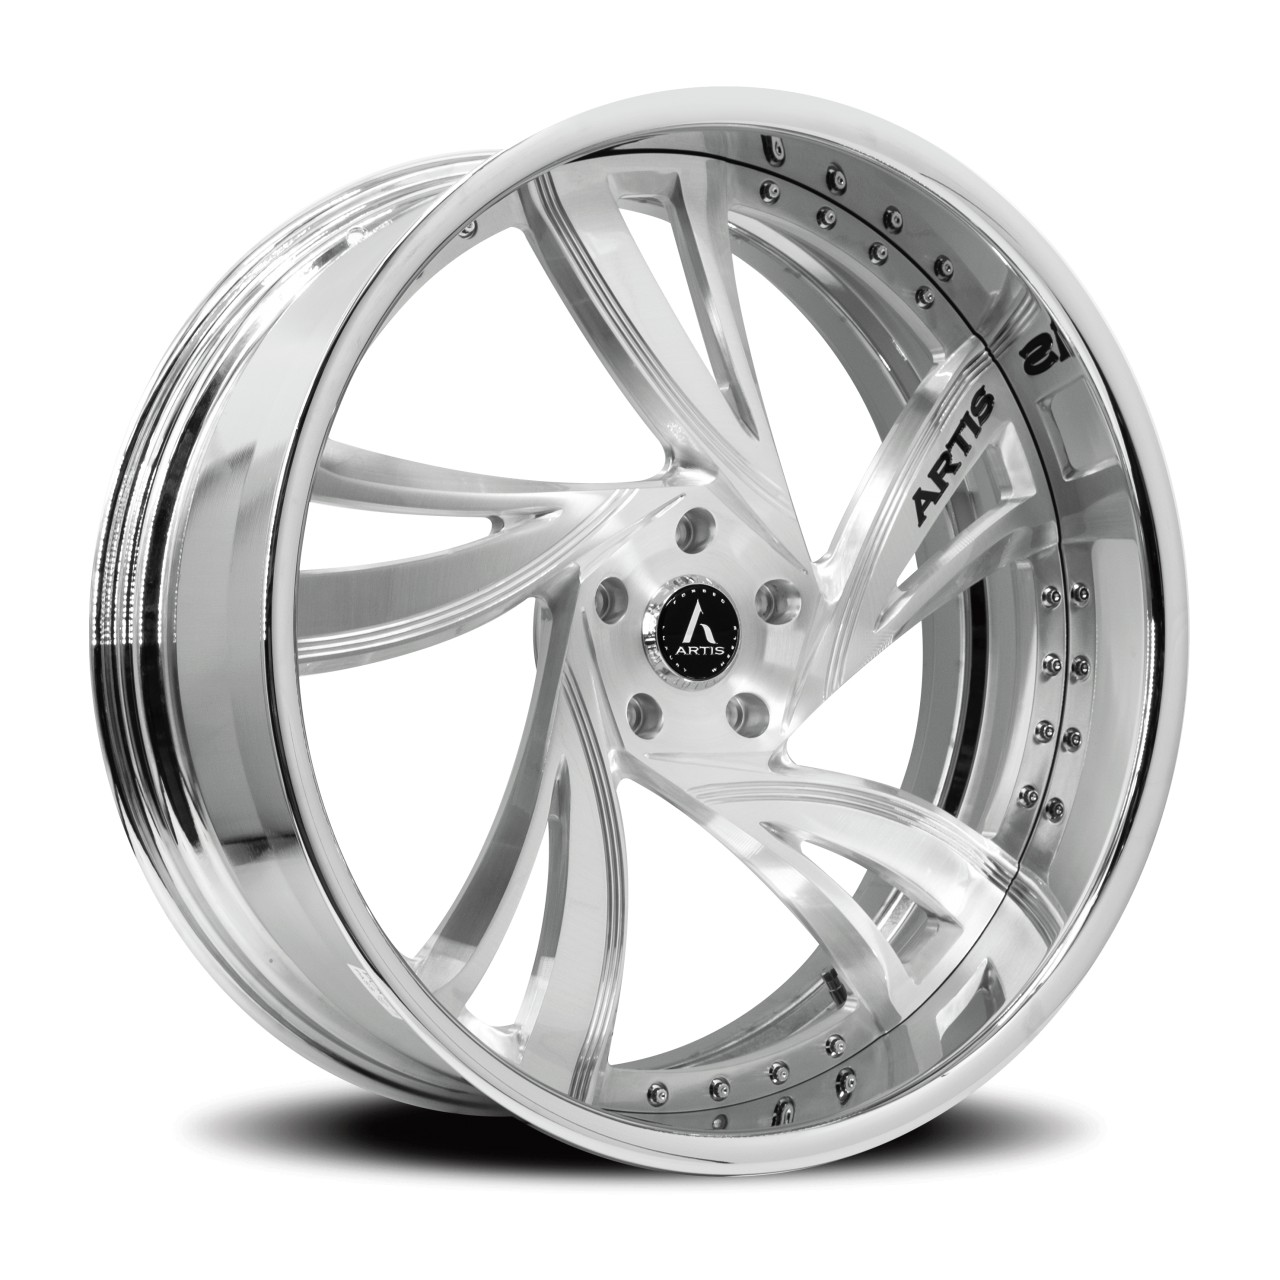 Artis Forged Kingston wheel with Brushed finish